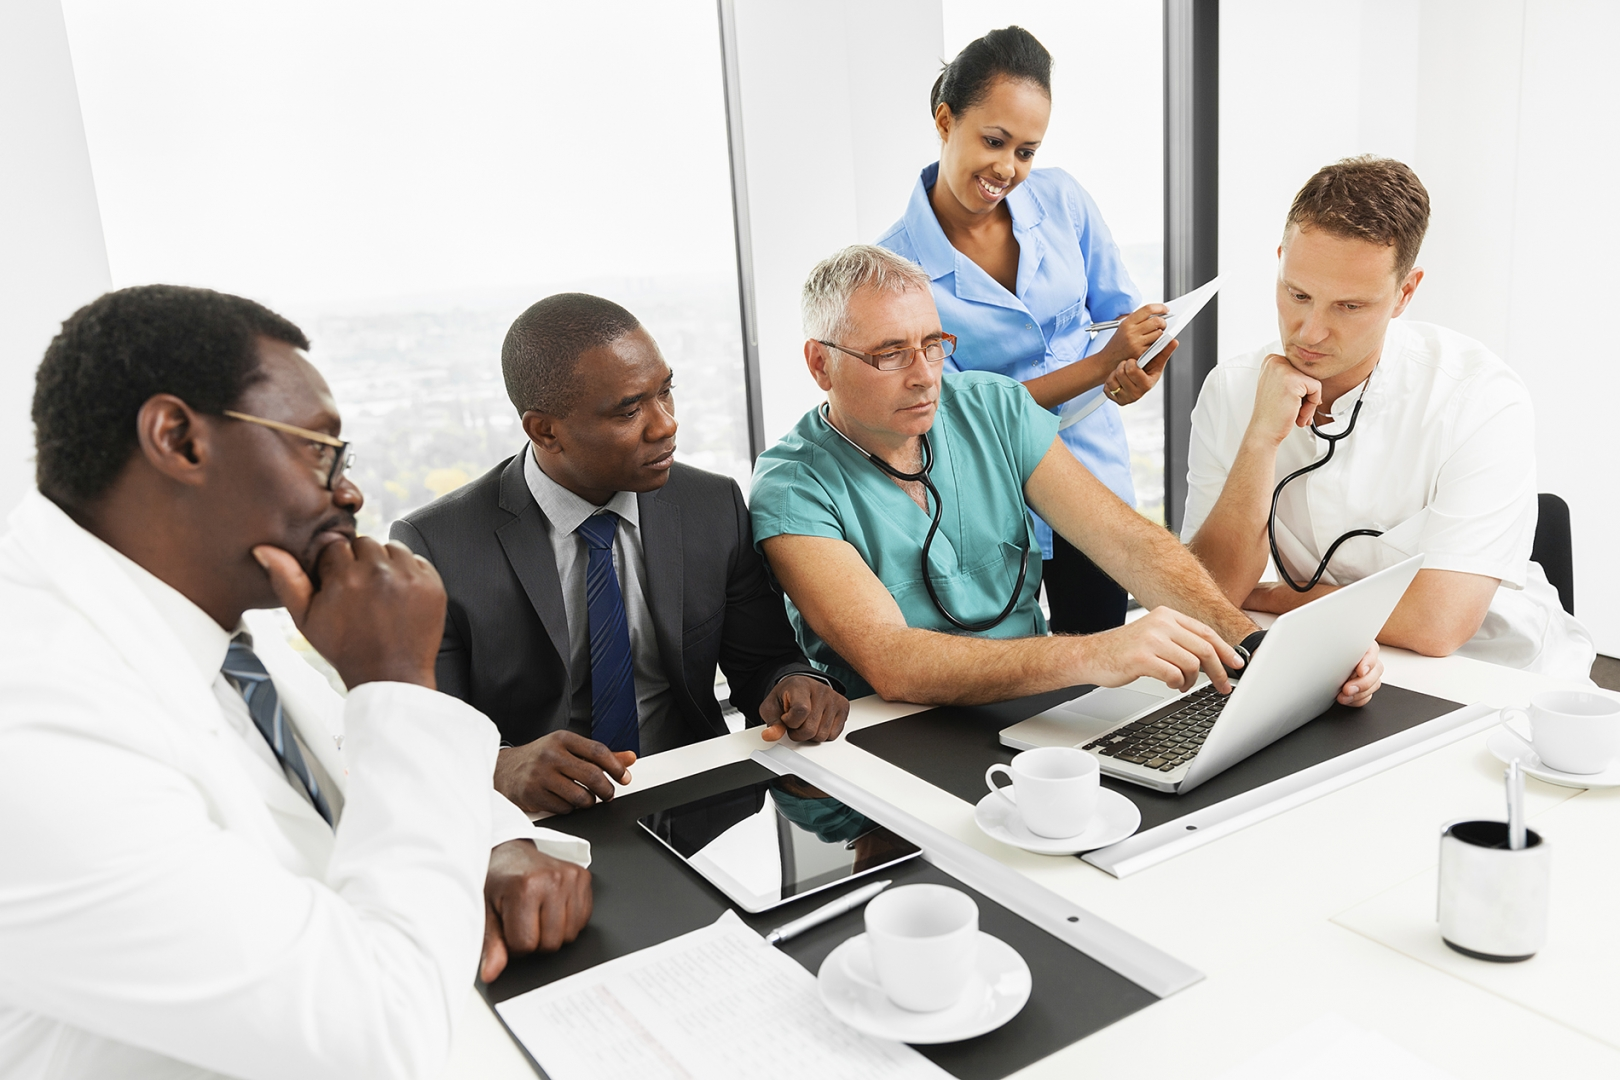 business people and doctors around a table reviewing documents